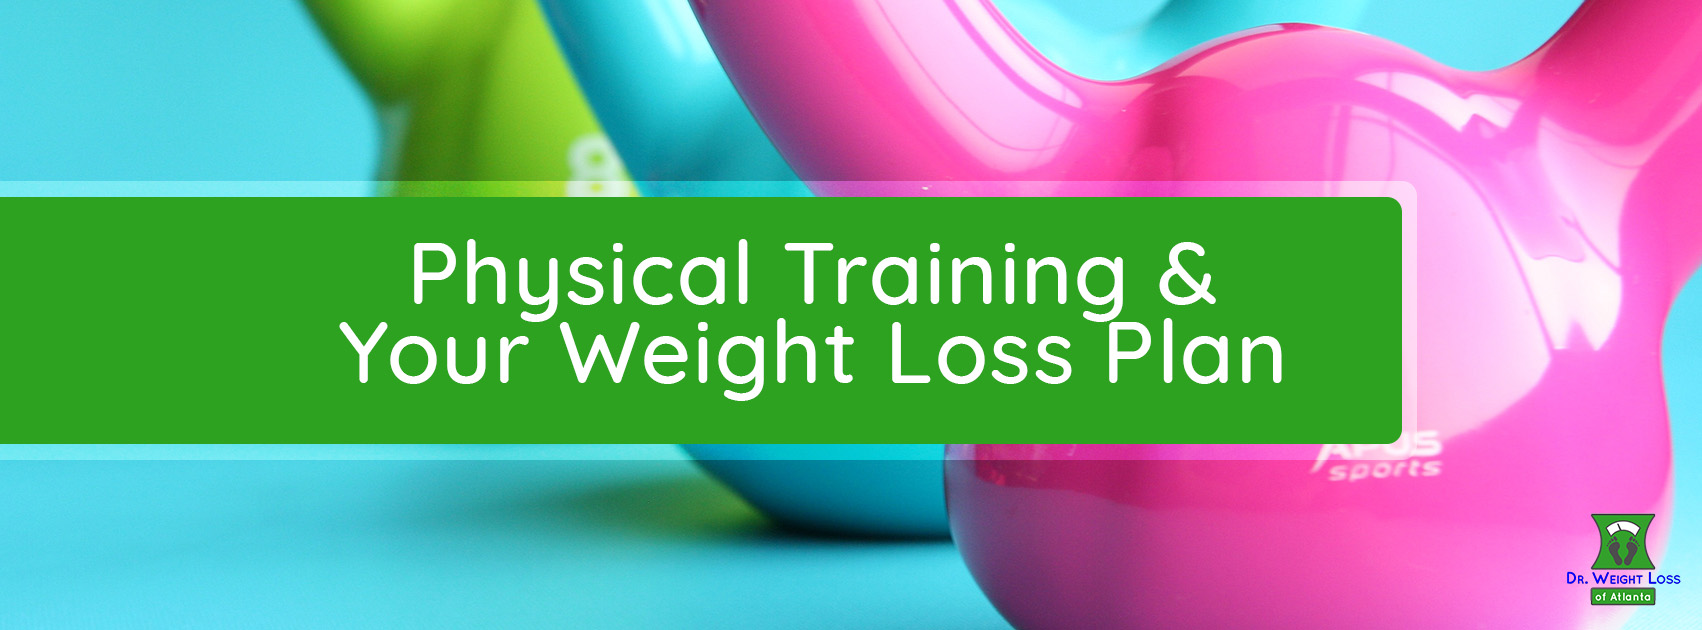 Physical Training Weight Loss Plan